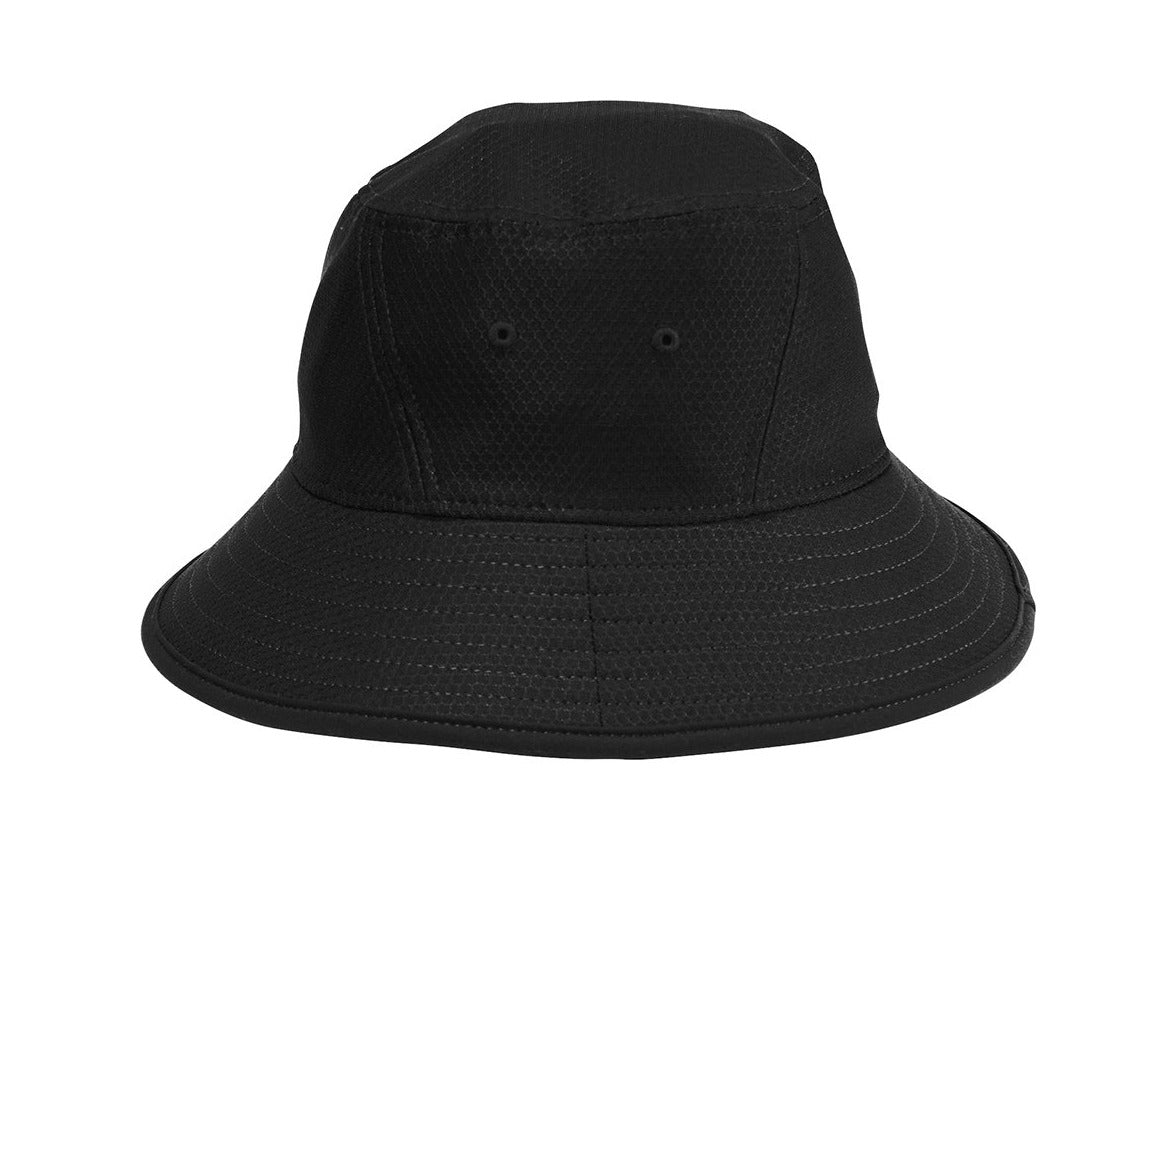 NE800 New Era ® Hex Era Bucket Hat